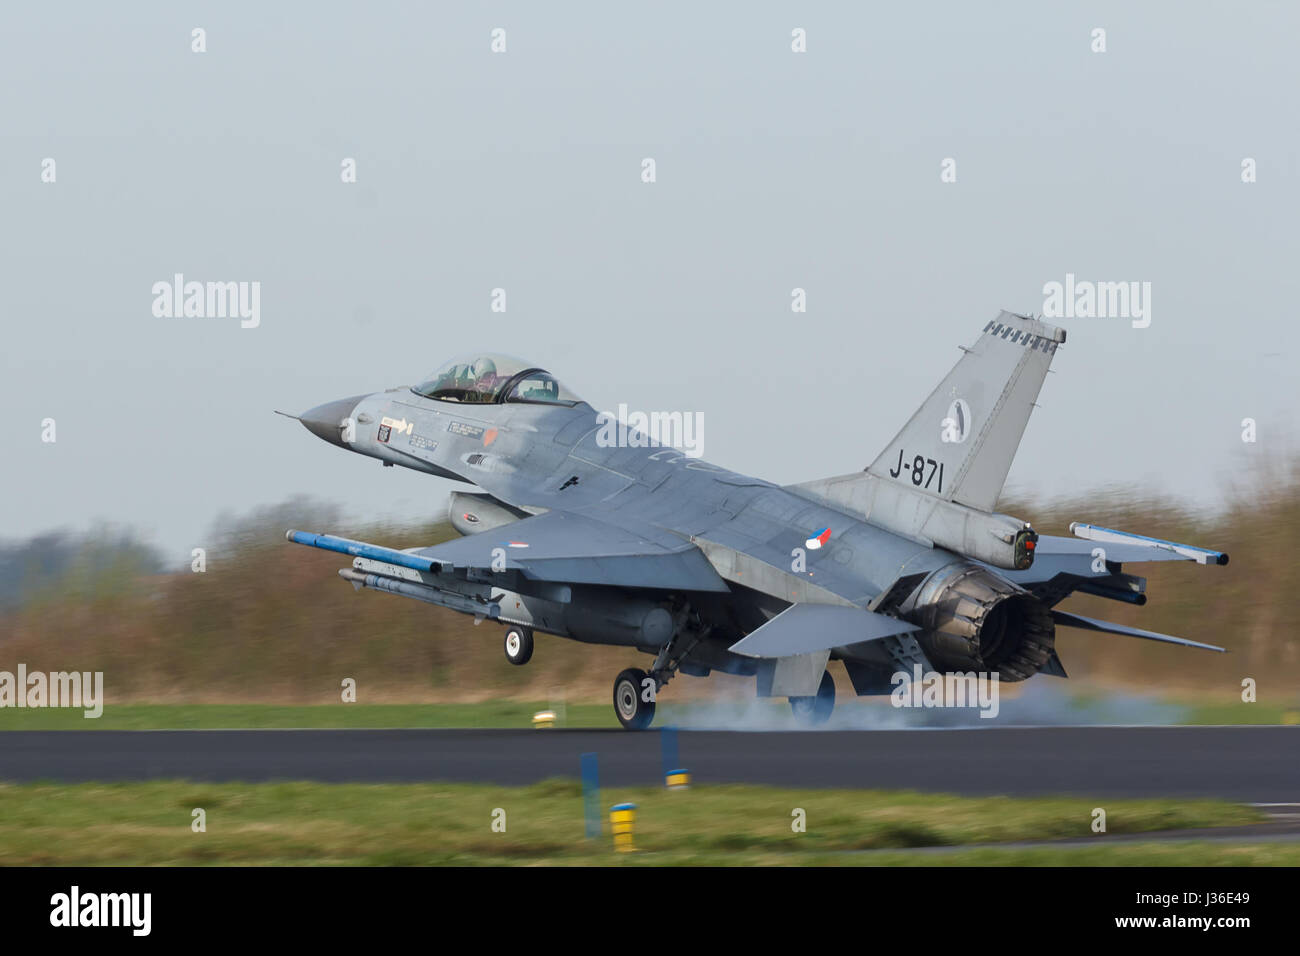 F-16A of 322 sqn of the RNLAF during Frisian Flag exercise - Stock Image